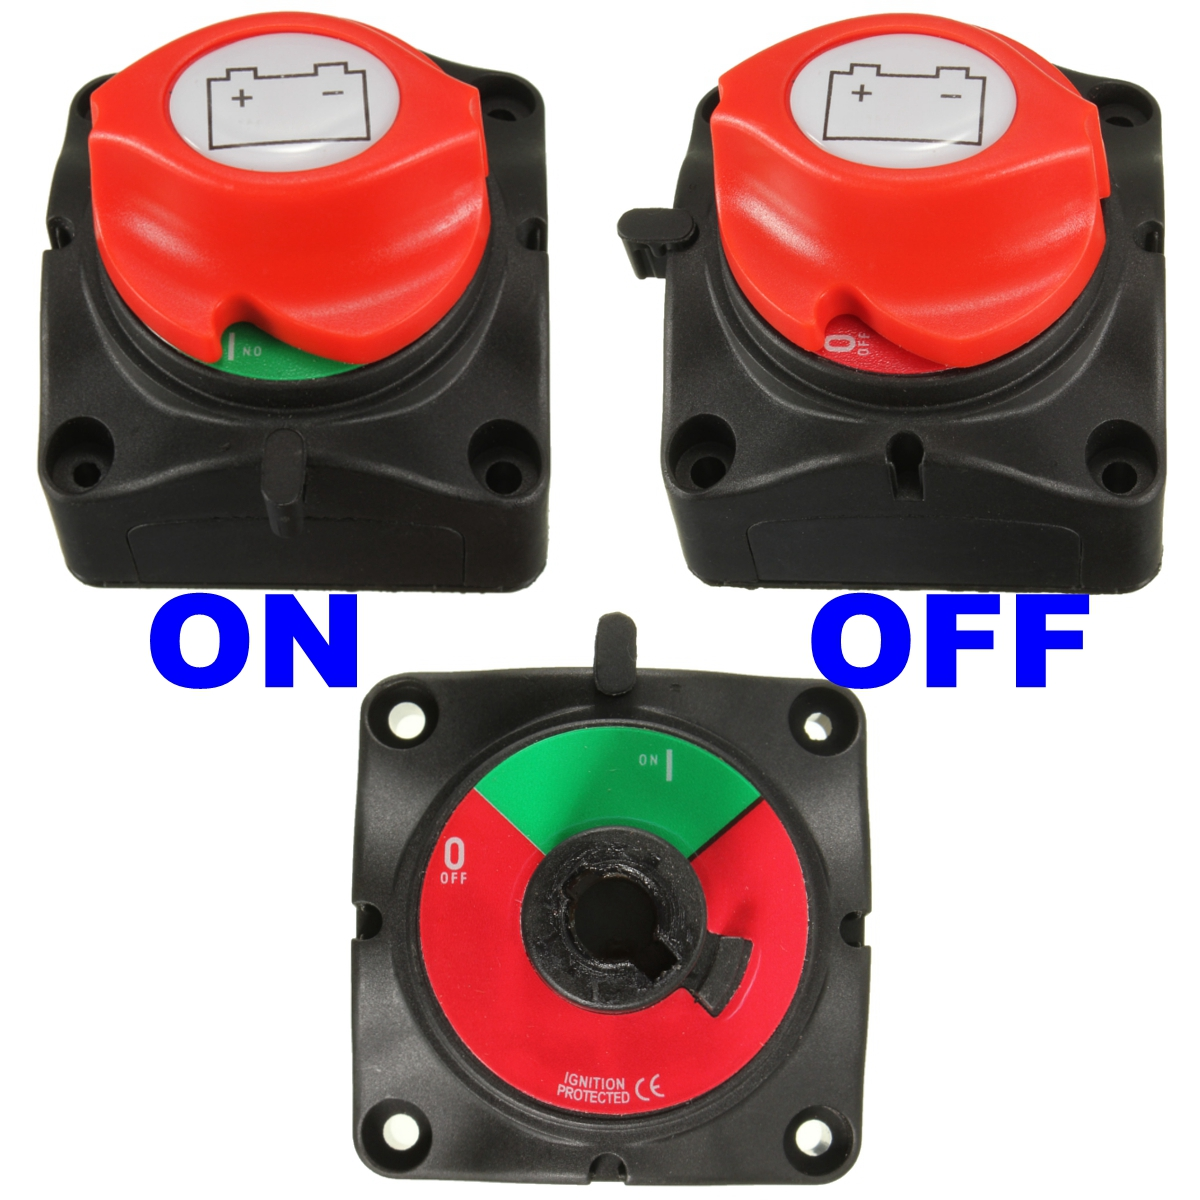 Sure Power Battery Isolator Wiring: 1X Marine Knob Battery Master Isolator Cut Off Power Kill